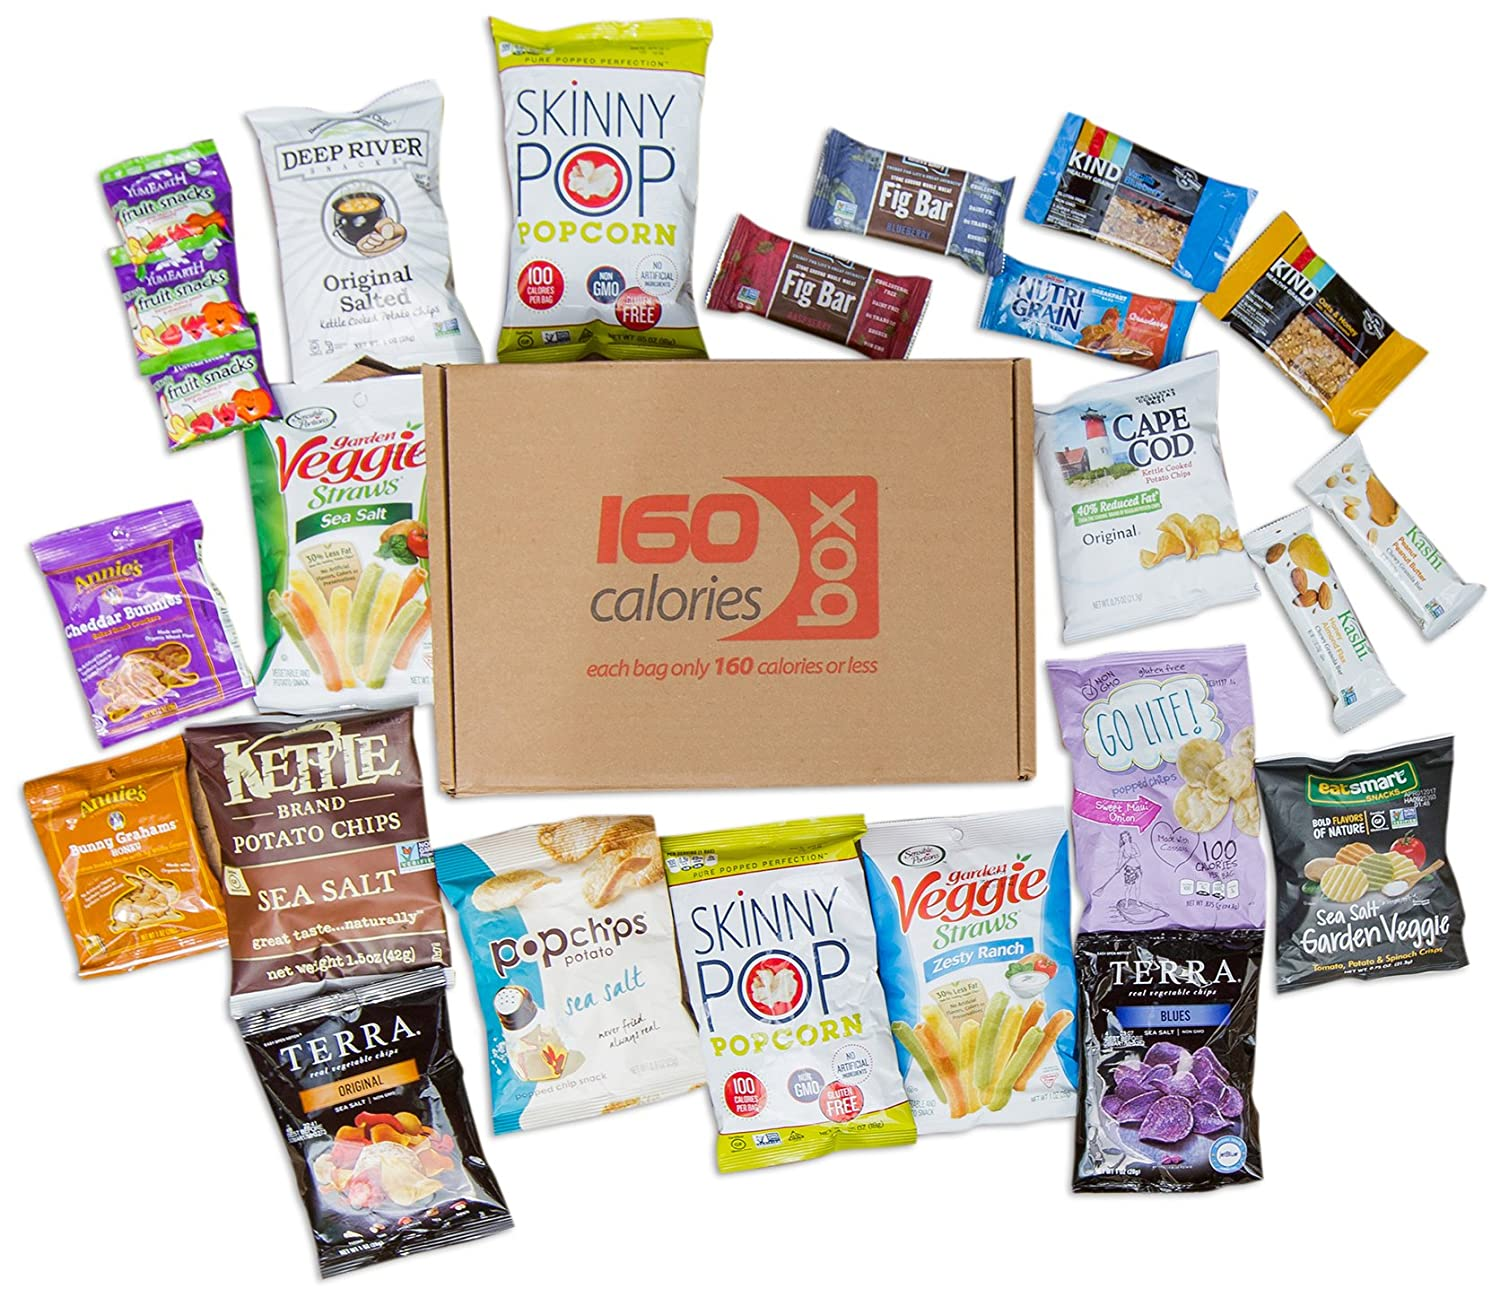 Healthy Snacks Care Package Box Under 160 Calories | Sweet & Nutritious  Bars, Nuts, Potato Chips, Veggie Straws & Others | For School, Adults,  Work,